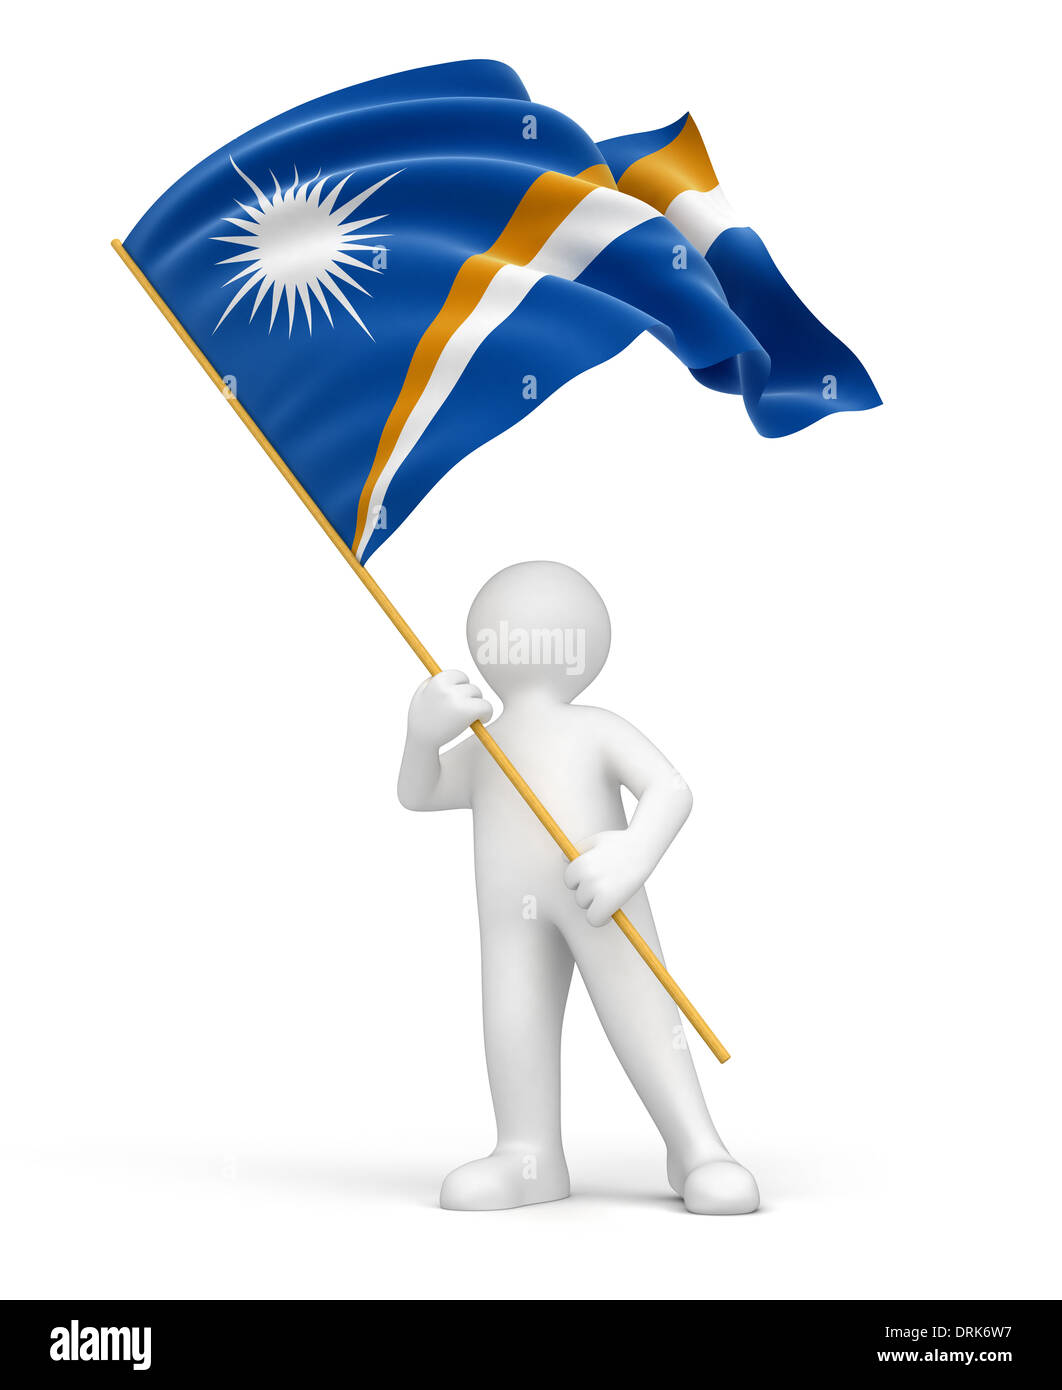 Man and Marshall Islands flag (clipping path included) - Stock Image